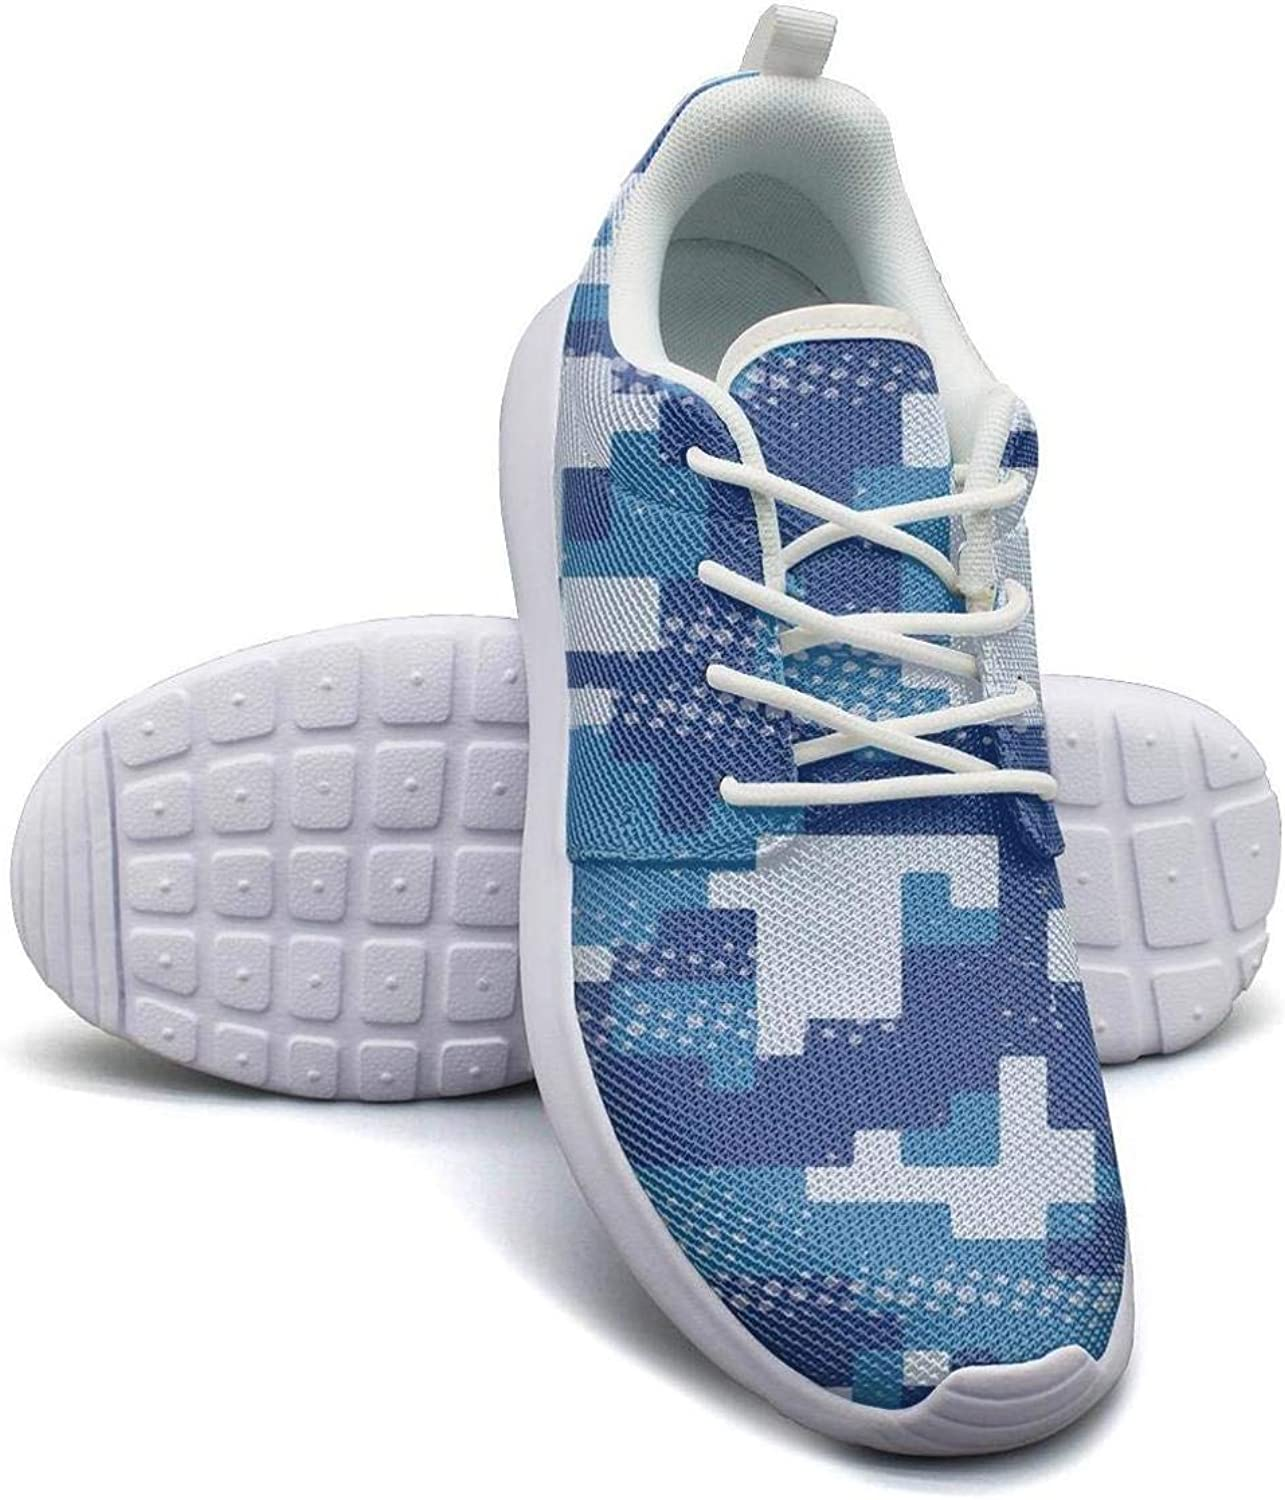 SKULLP Multicolored bears Tennis Shoes for Men cute Shock Absorption Trail Running Shoes